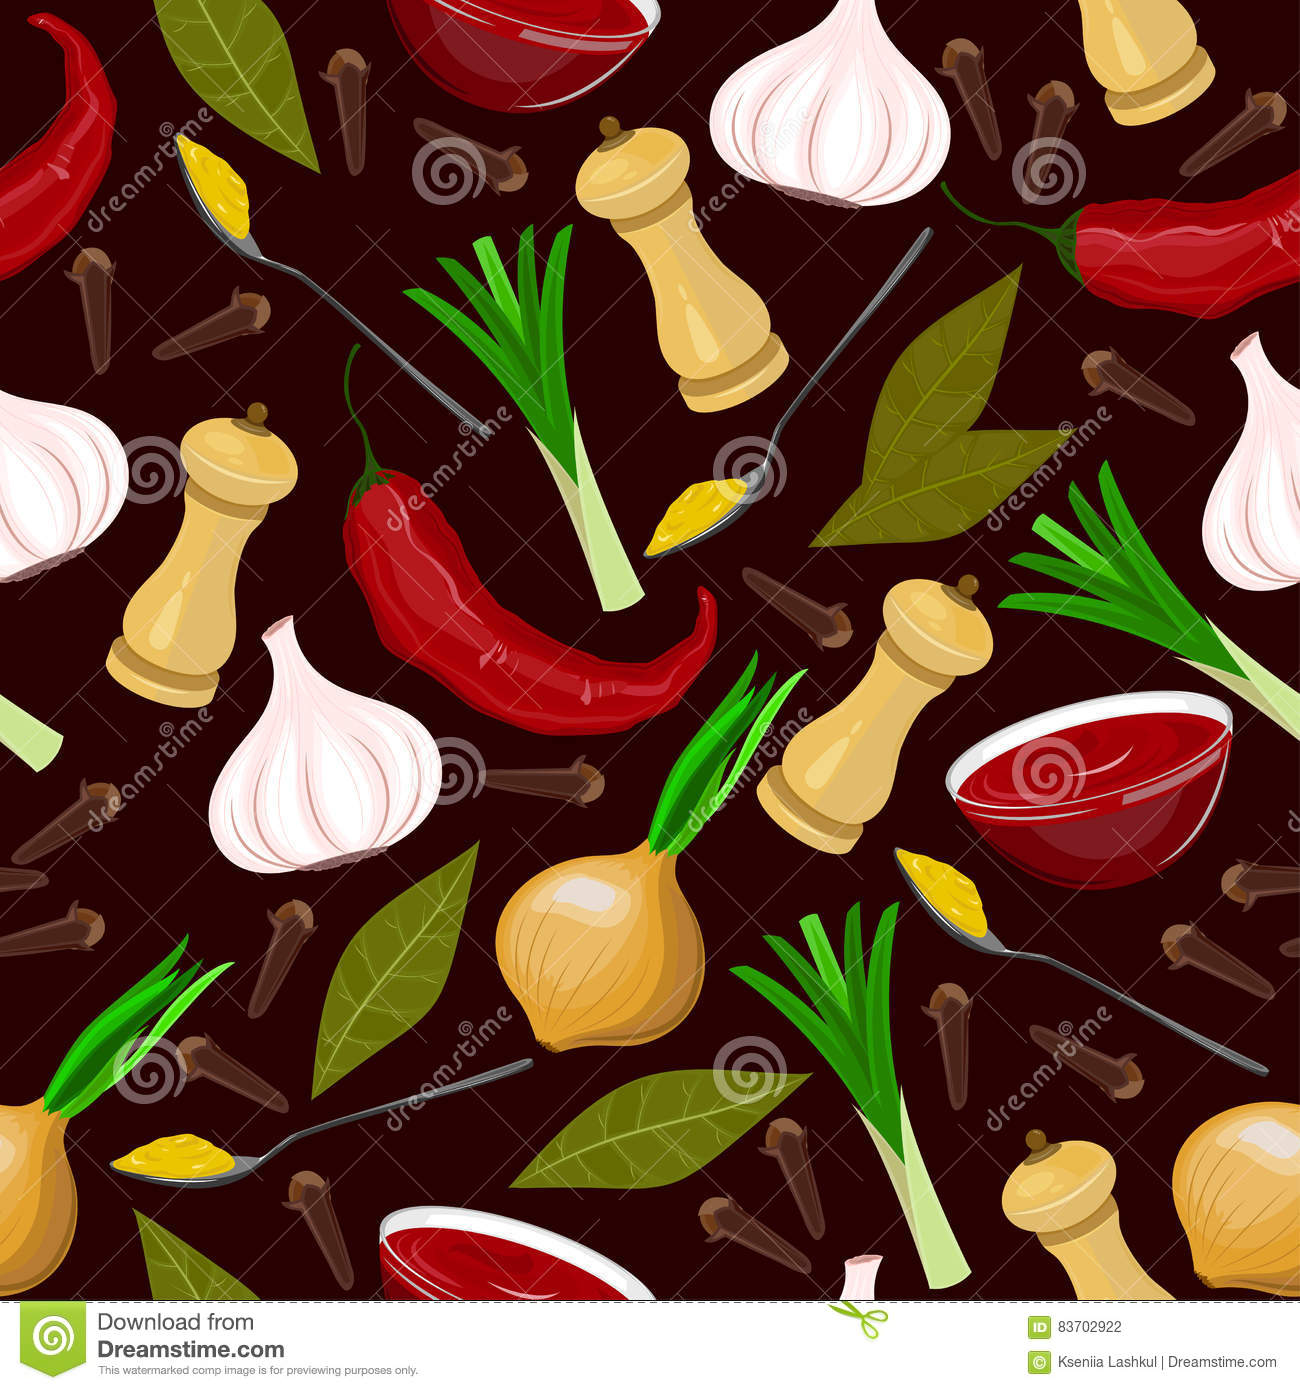 Seamless Condiments And Spices Illustration. Stock Vector